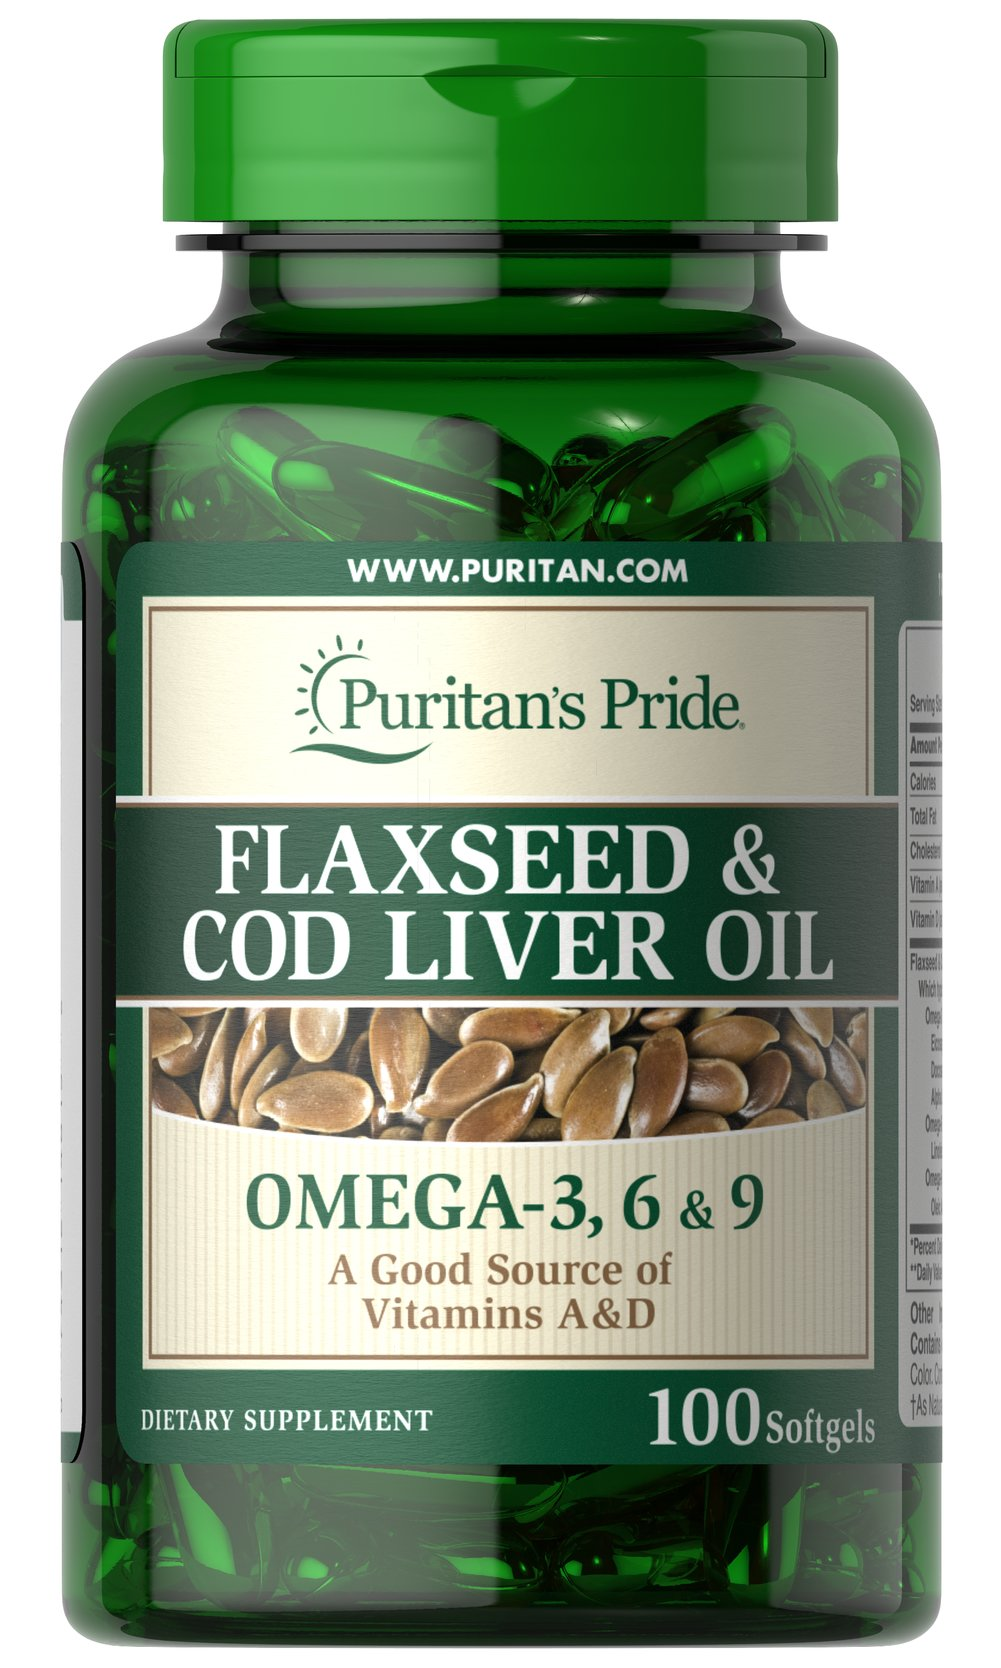 Flaxseed Cod Liver Oil 1000 Mg Omega 3 6 9 100 Softgels